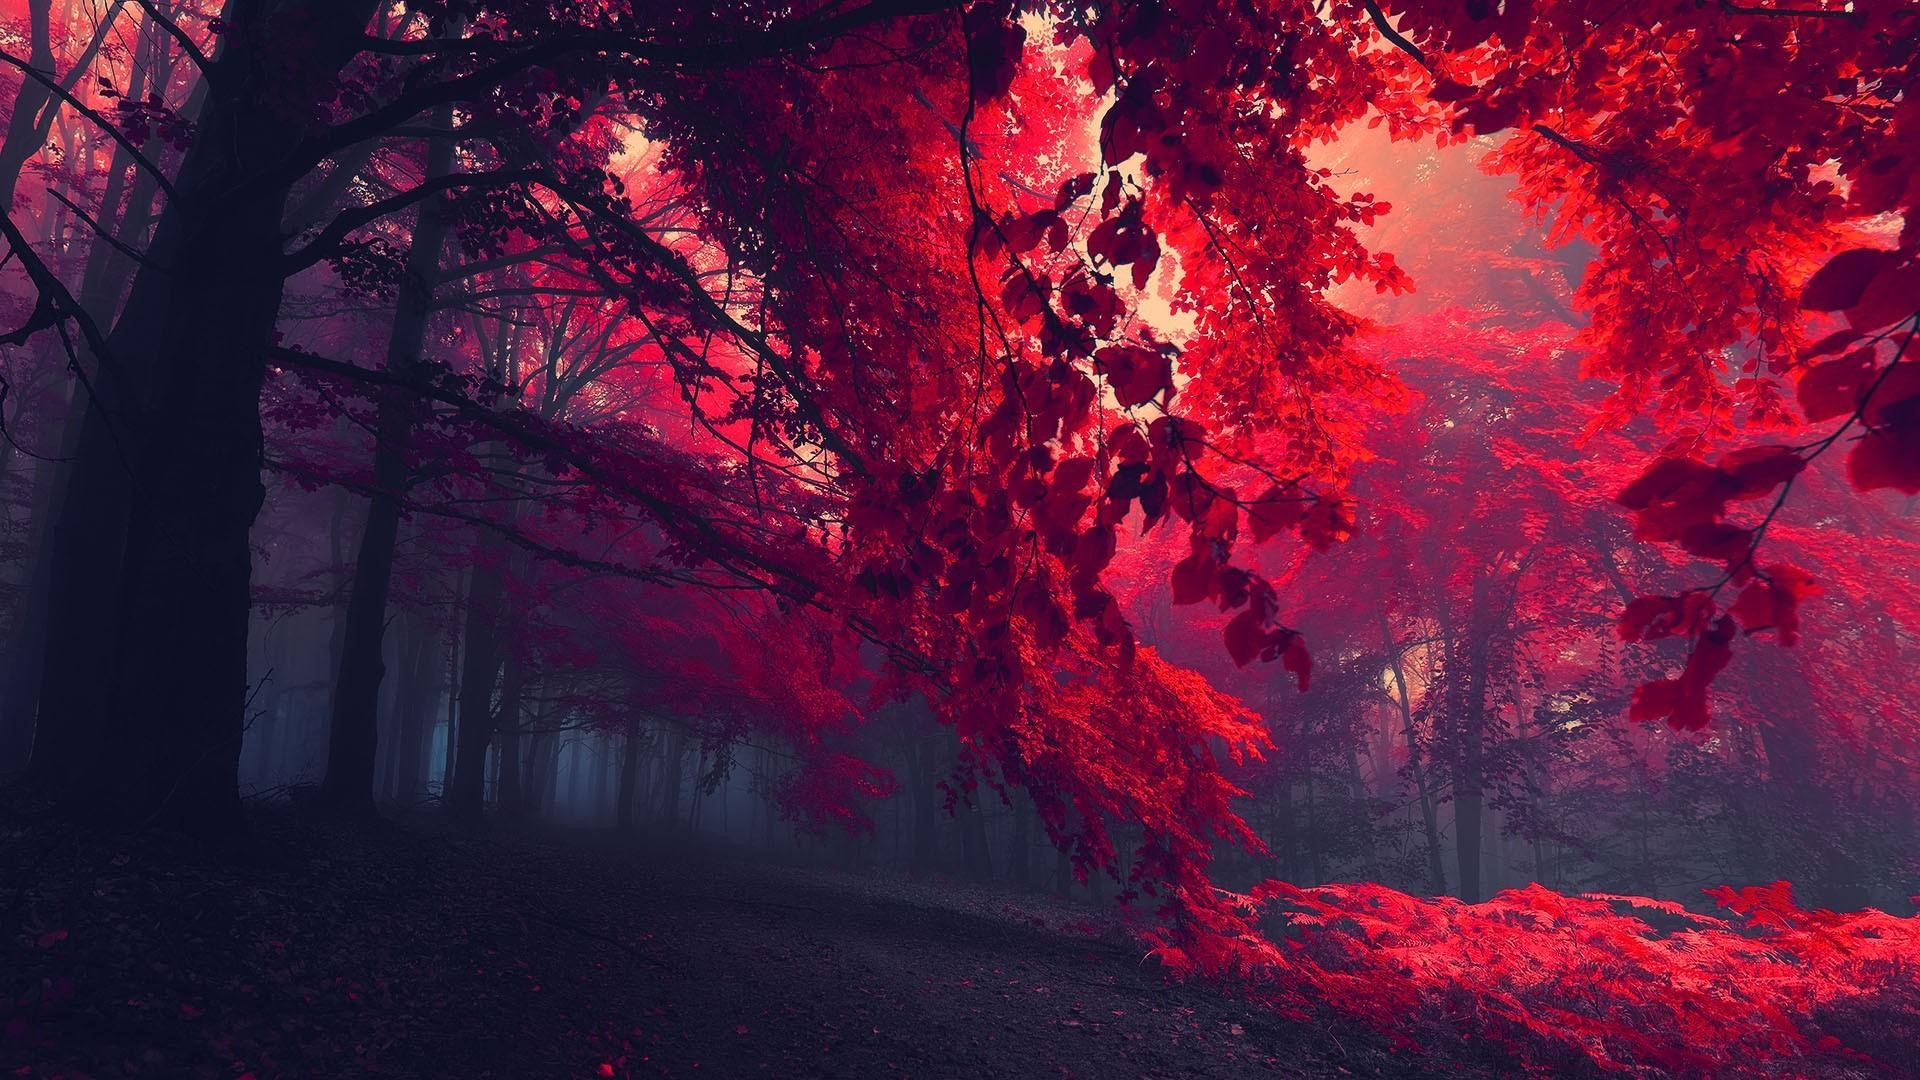 Red Wallpaper 4k 1920x1080